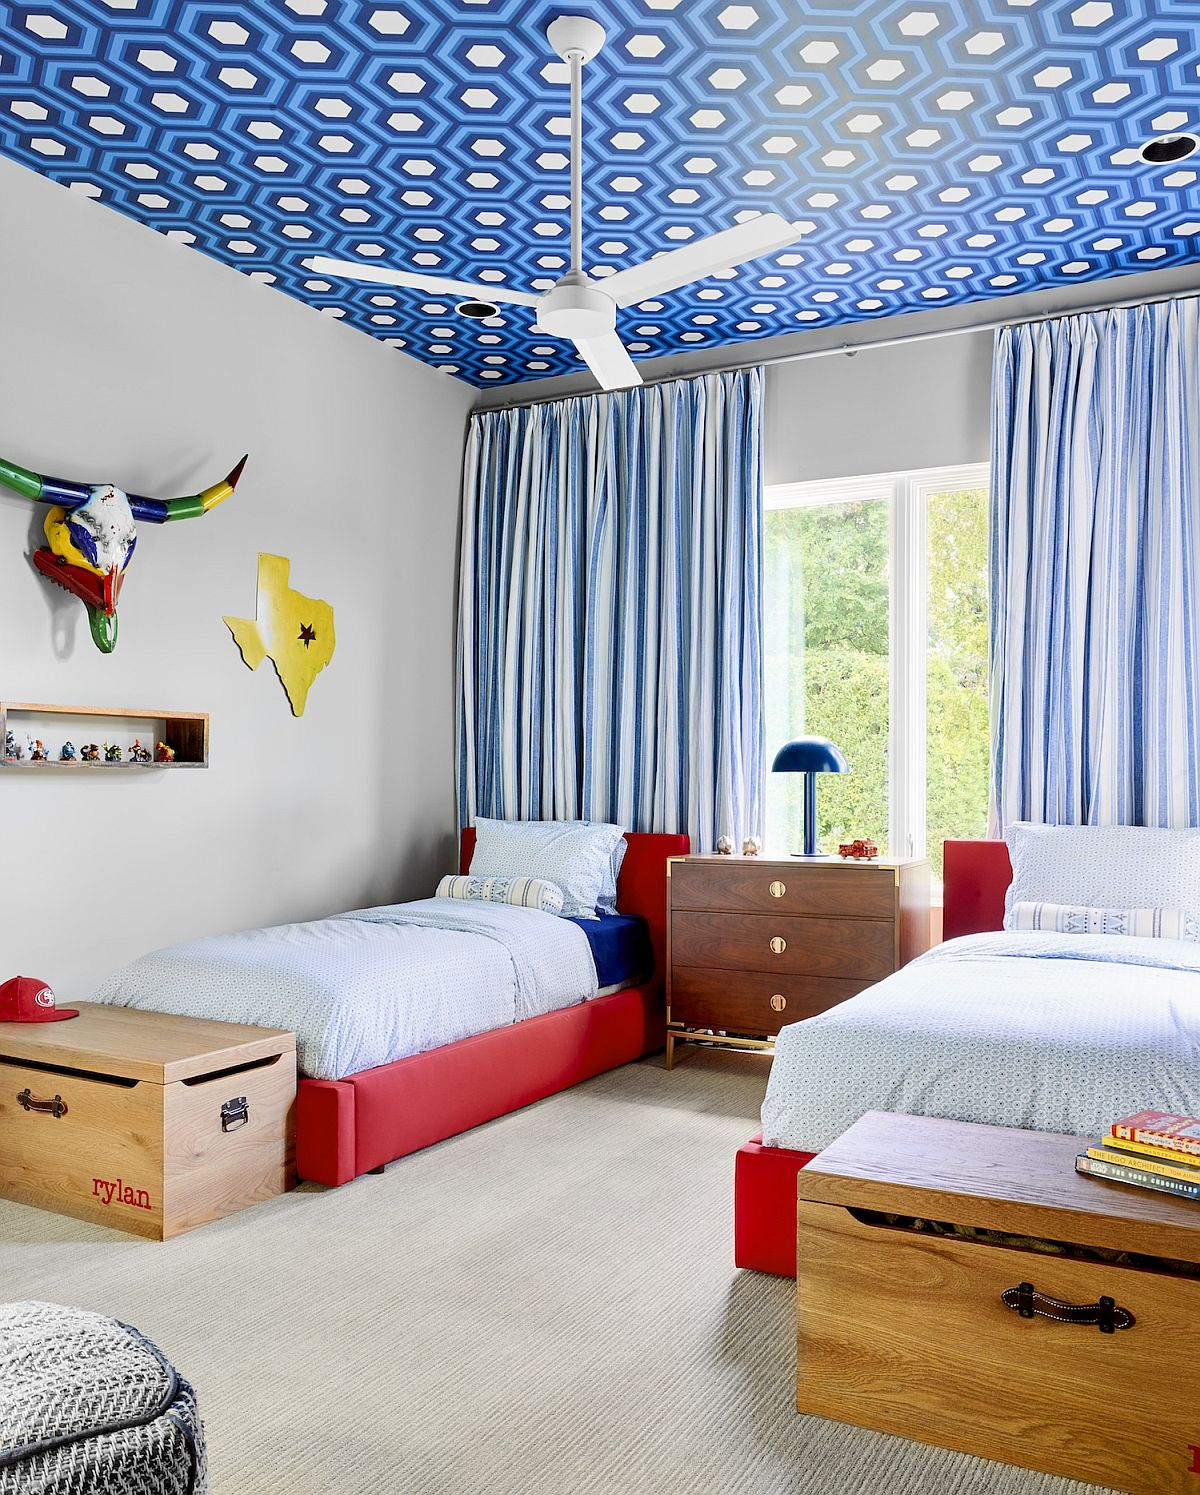 Wallpaper On The Ceiling Ideas To Make Kids Rooms Even More Brilliant